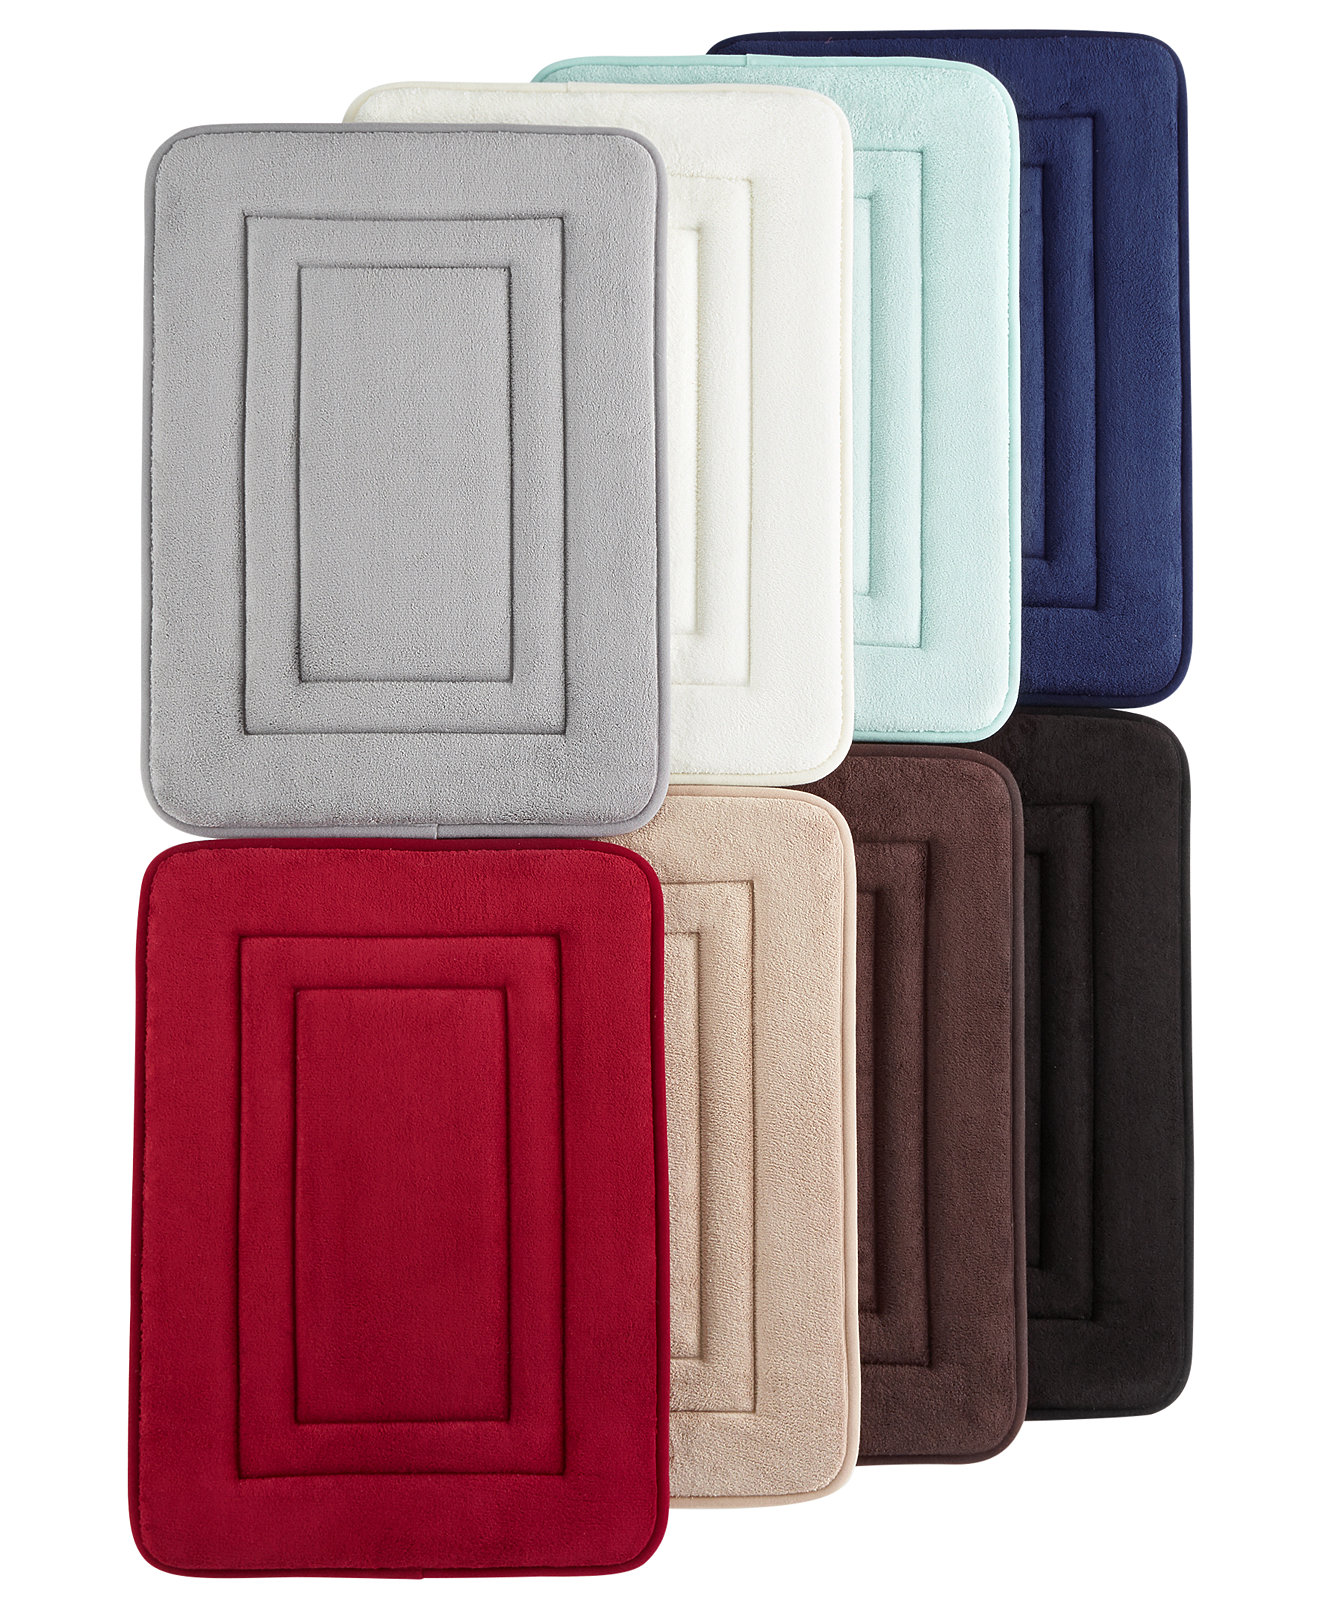 Foam Kitchen Floor Mats Bath Rugs And Mats Macys